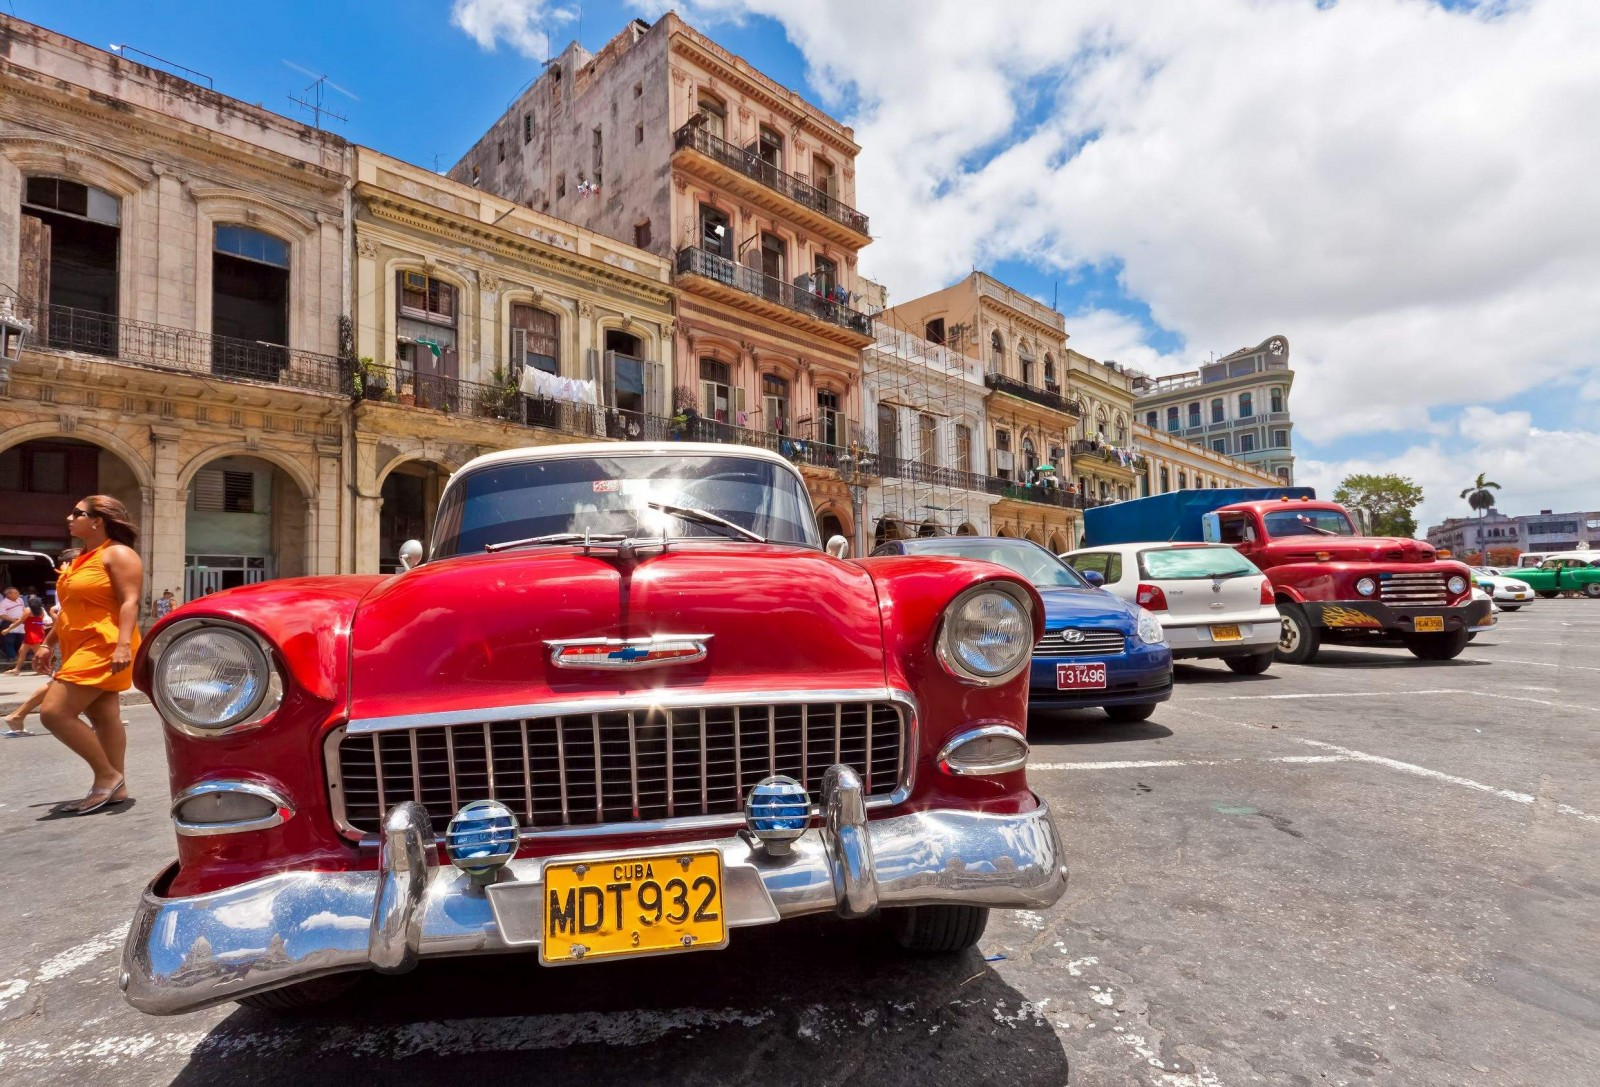 Havana′s collapsing colonial charm | All media content ...